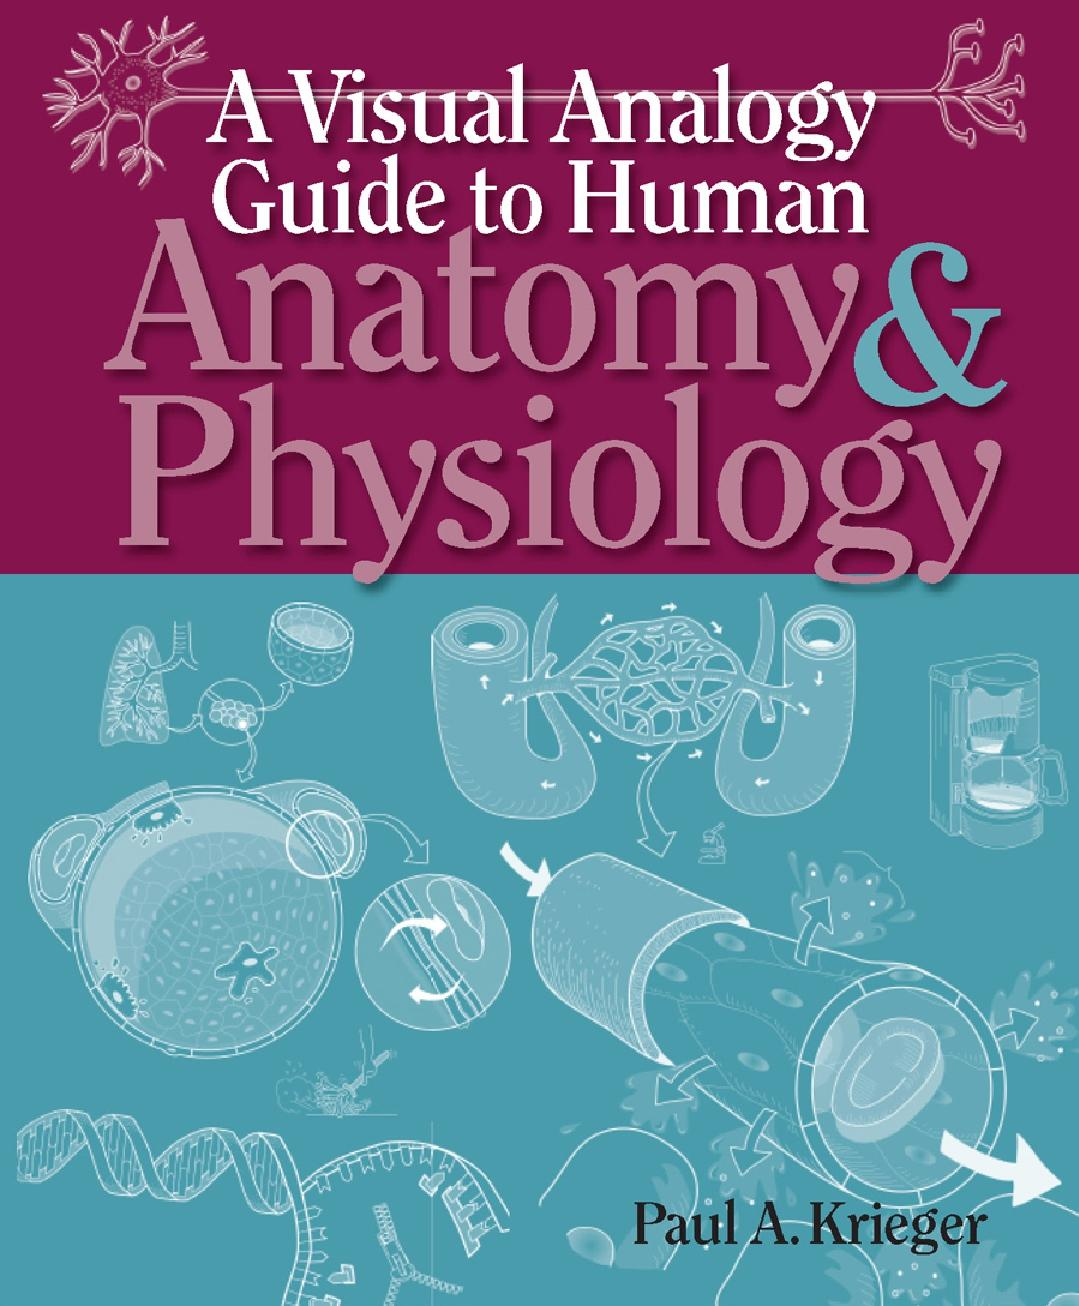 A Visual Analogy Guide To Human Anatomy And Physiology P Krieger